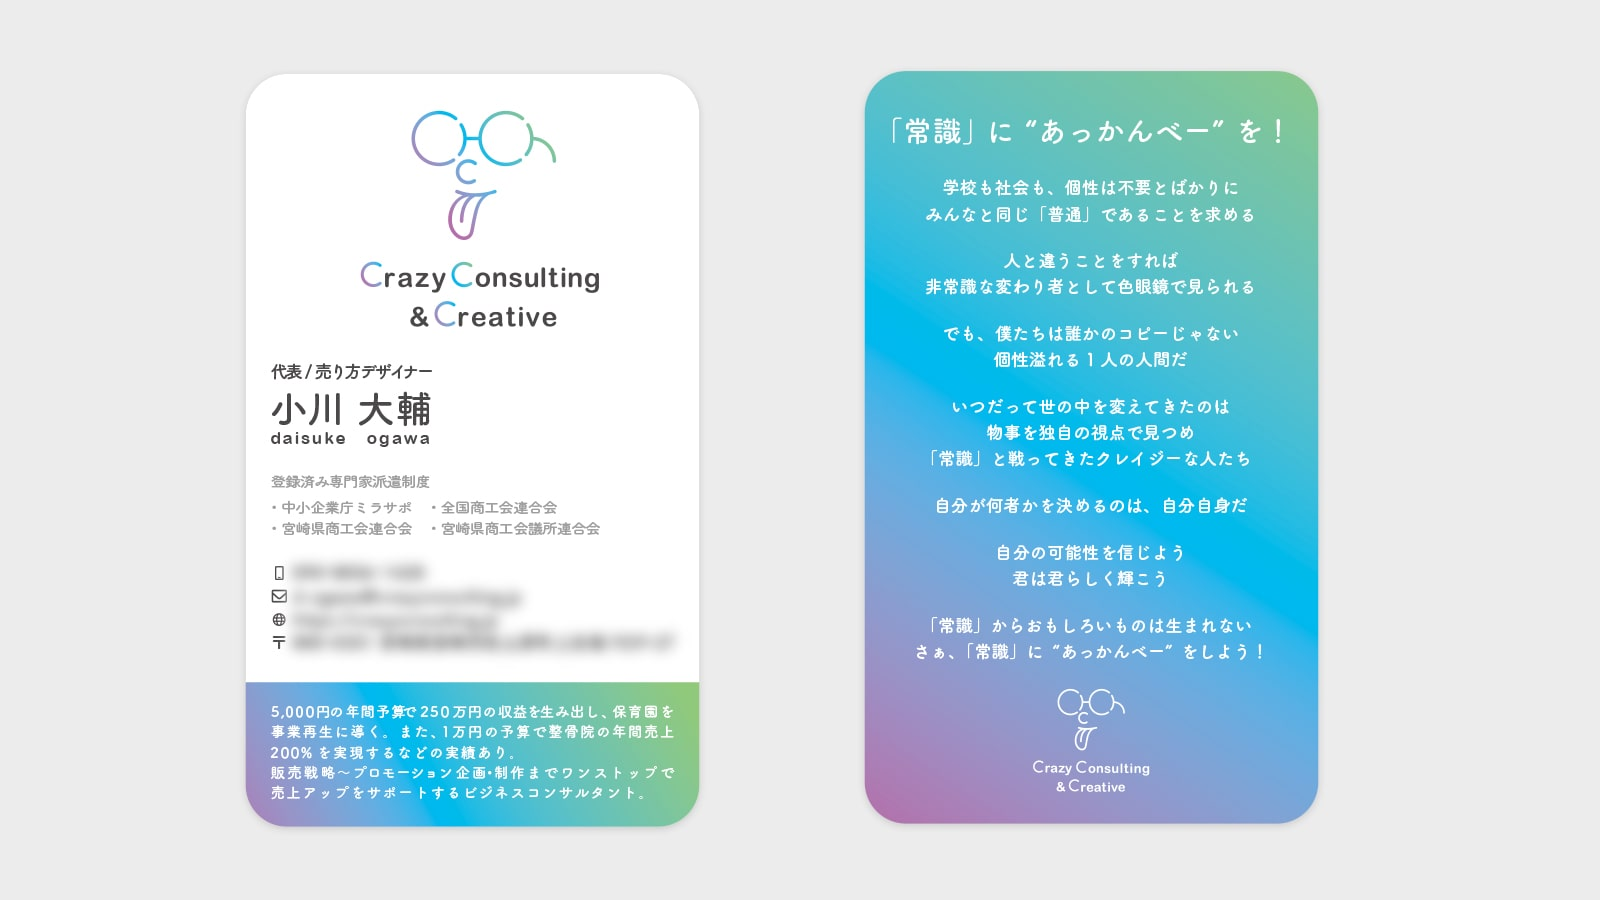 Crazy Consulting & Creative名刺イメージ